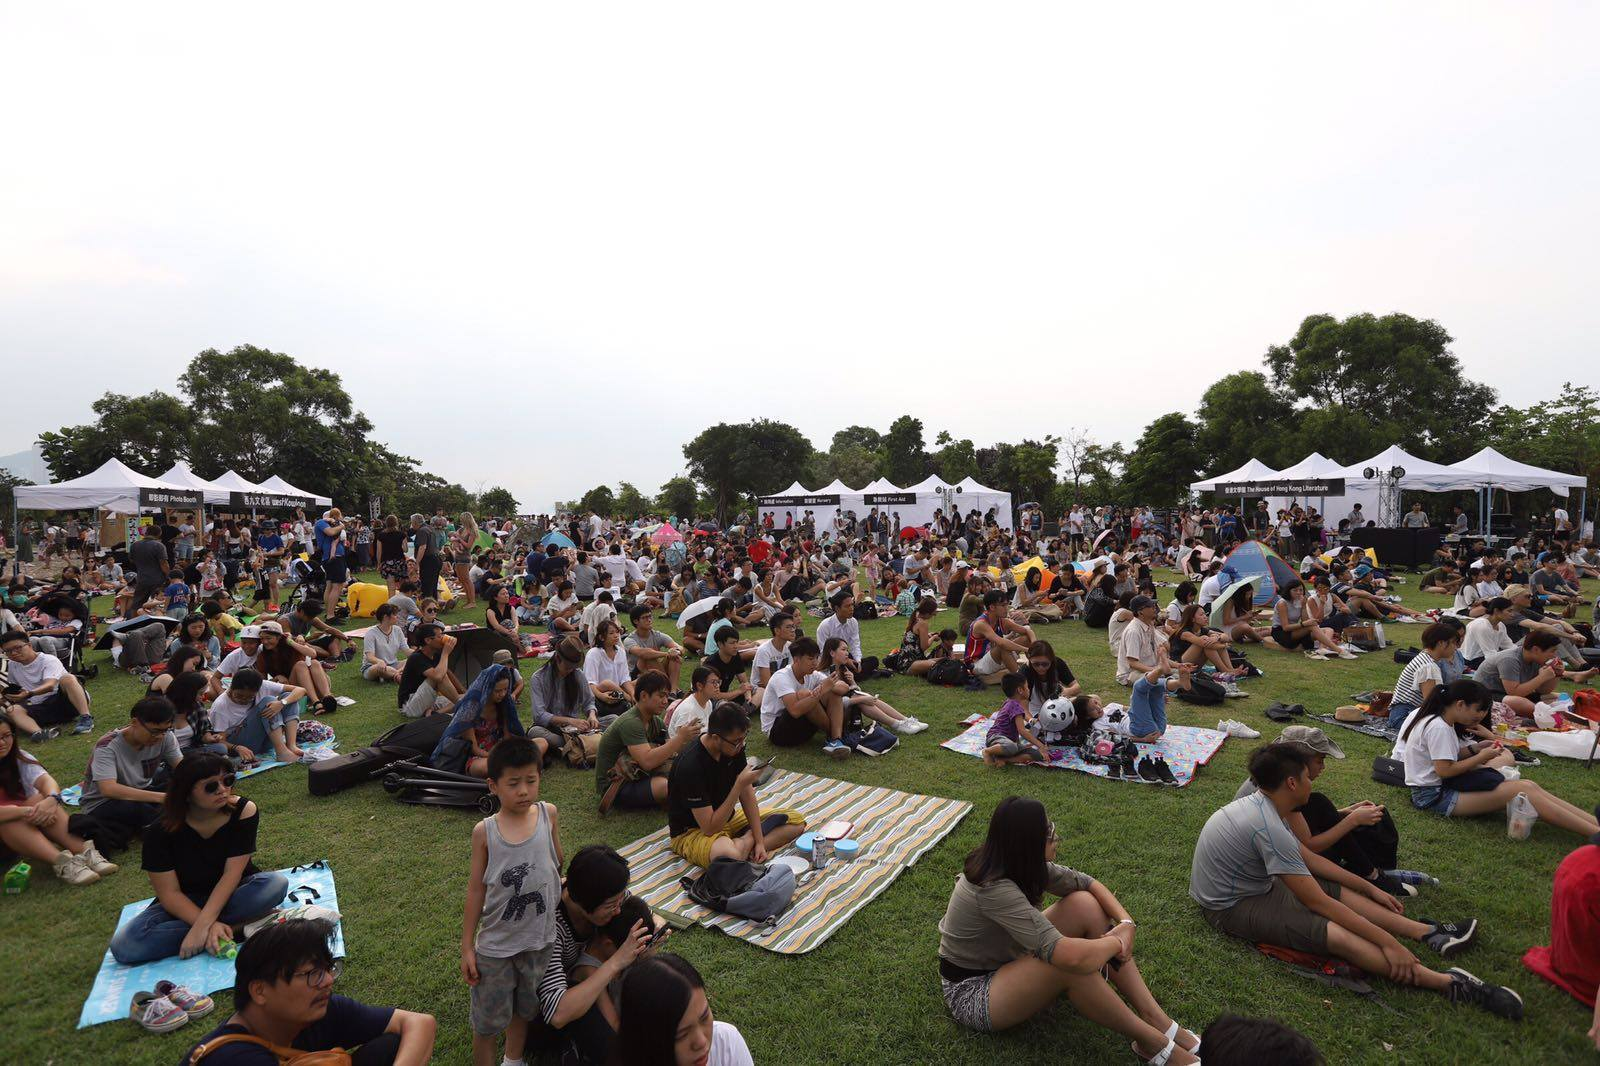 Freespace Happening at West Kowloon Nursery Park